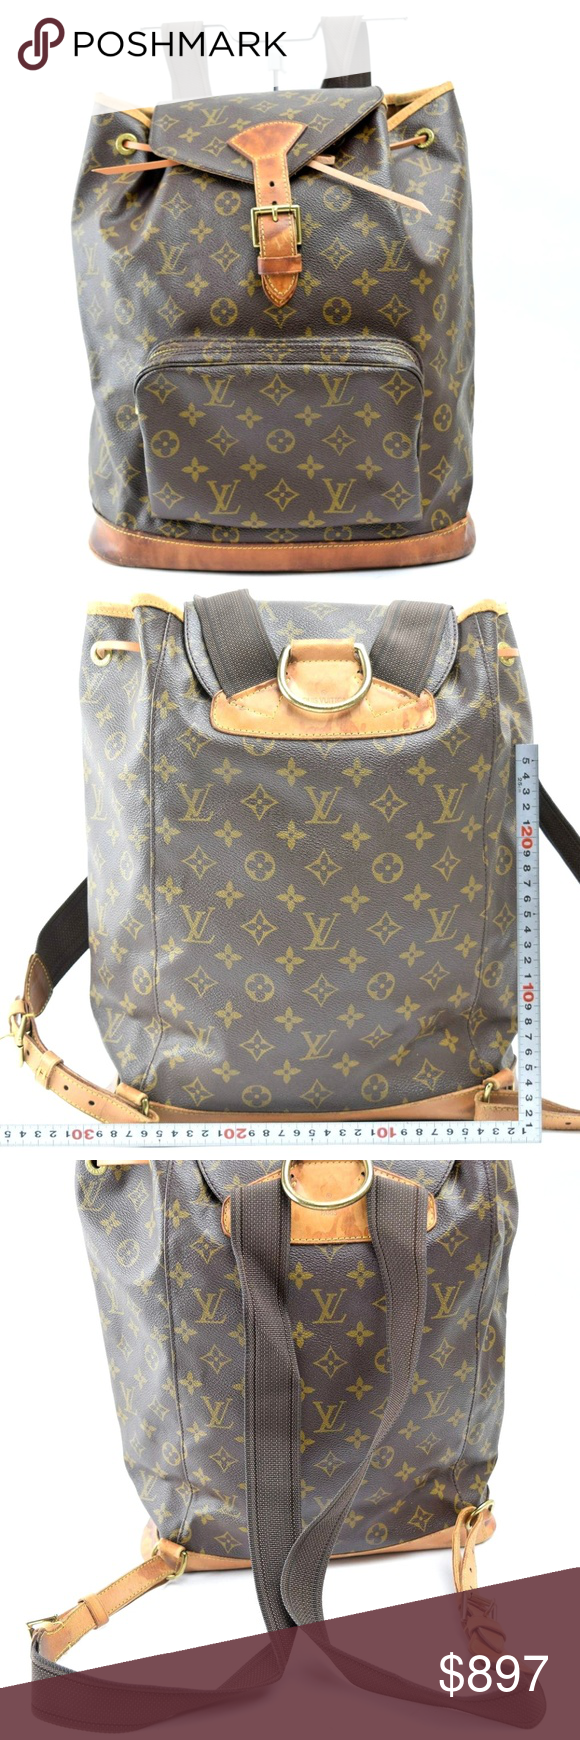 fd1528b33d8 Auth Louis Vuitton Montsouris GM Backpack 149LBP42 Preloved in good cond.  Exterior shows minor rip